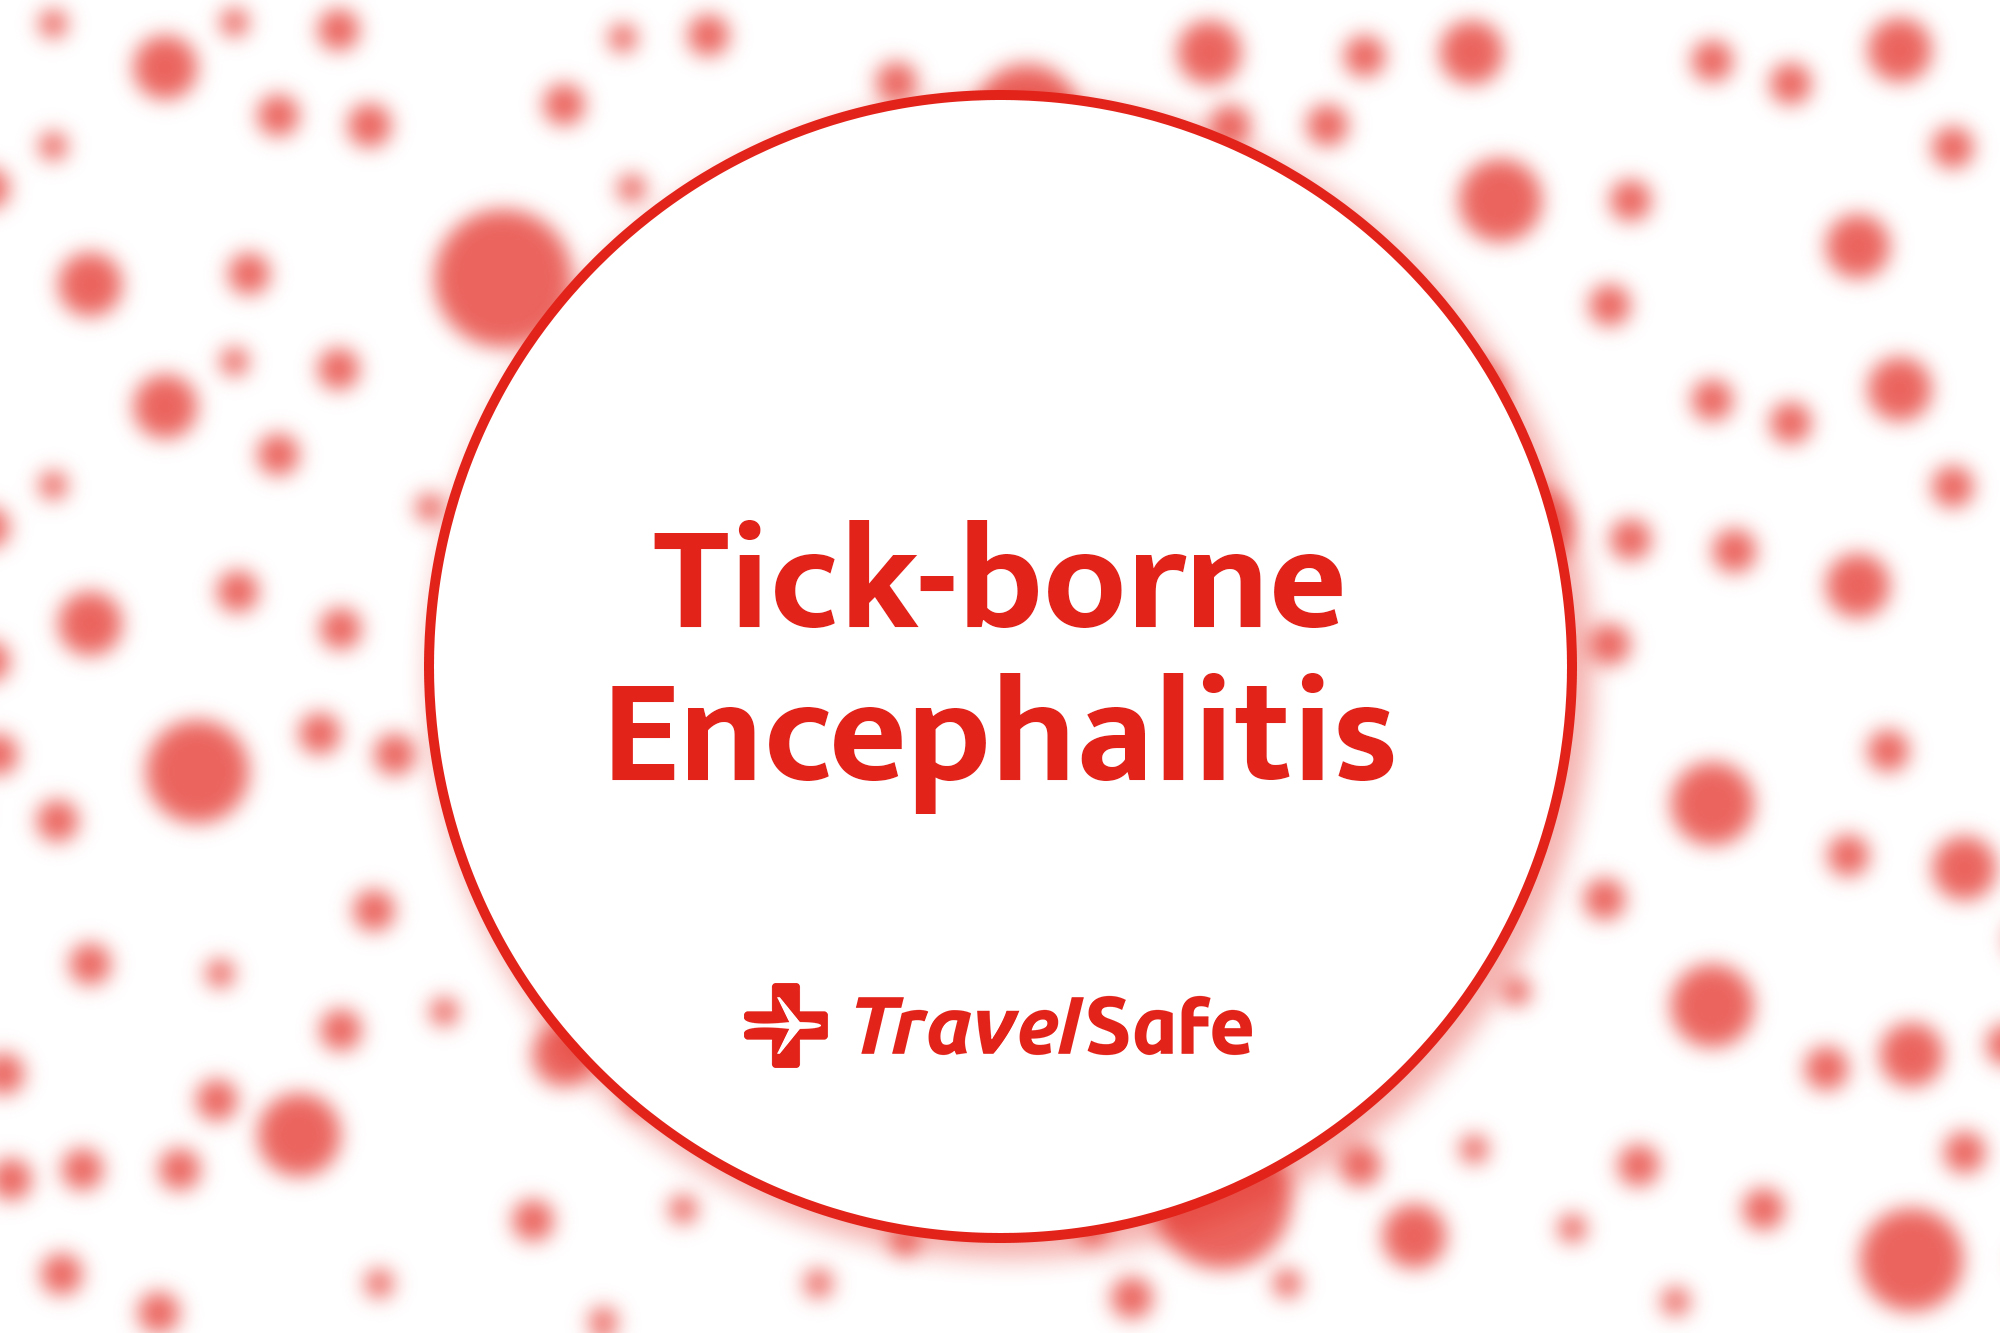 tick-borne encephalitis - Are you at risk? - travel clinic TravelSafe